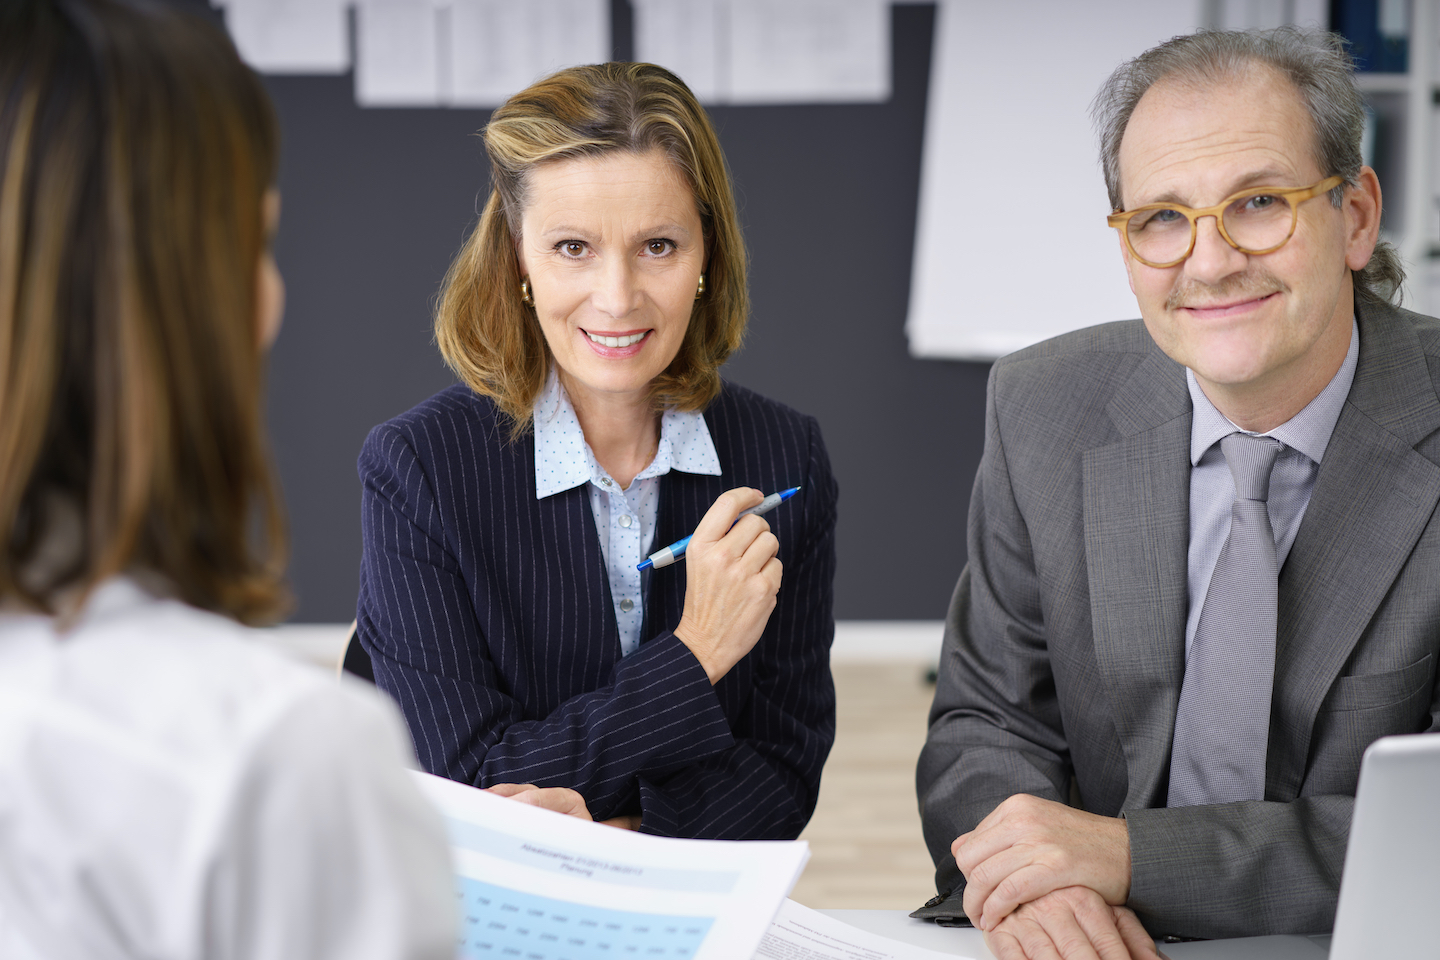 Mature aged man and womn at work shutterstock_369430667